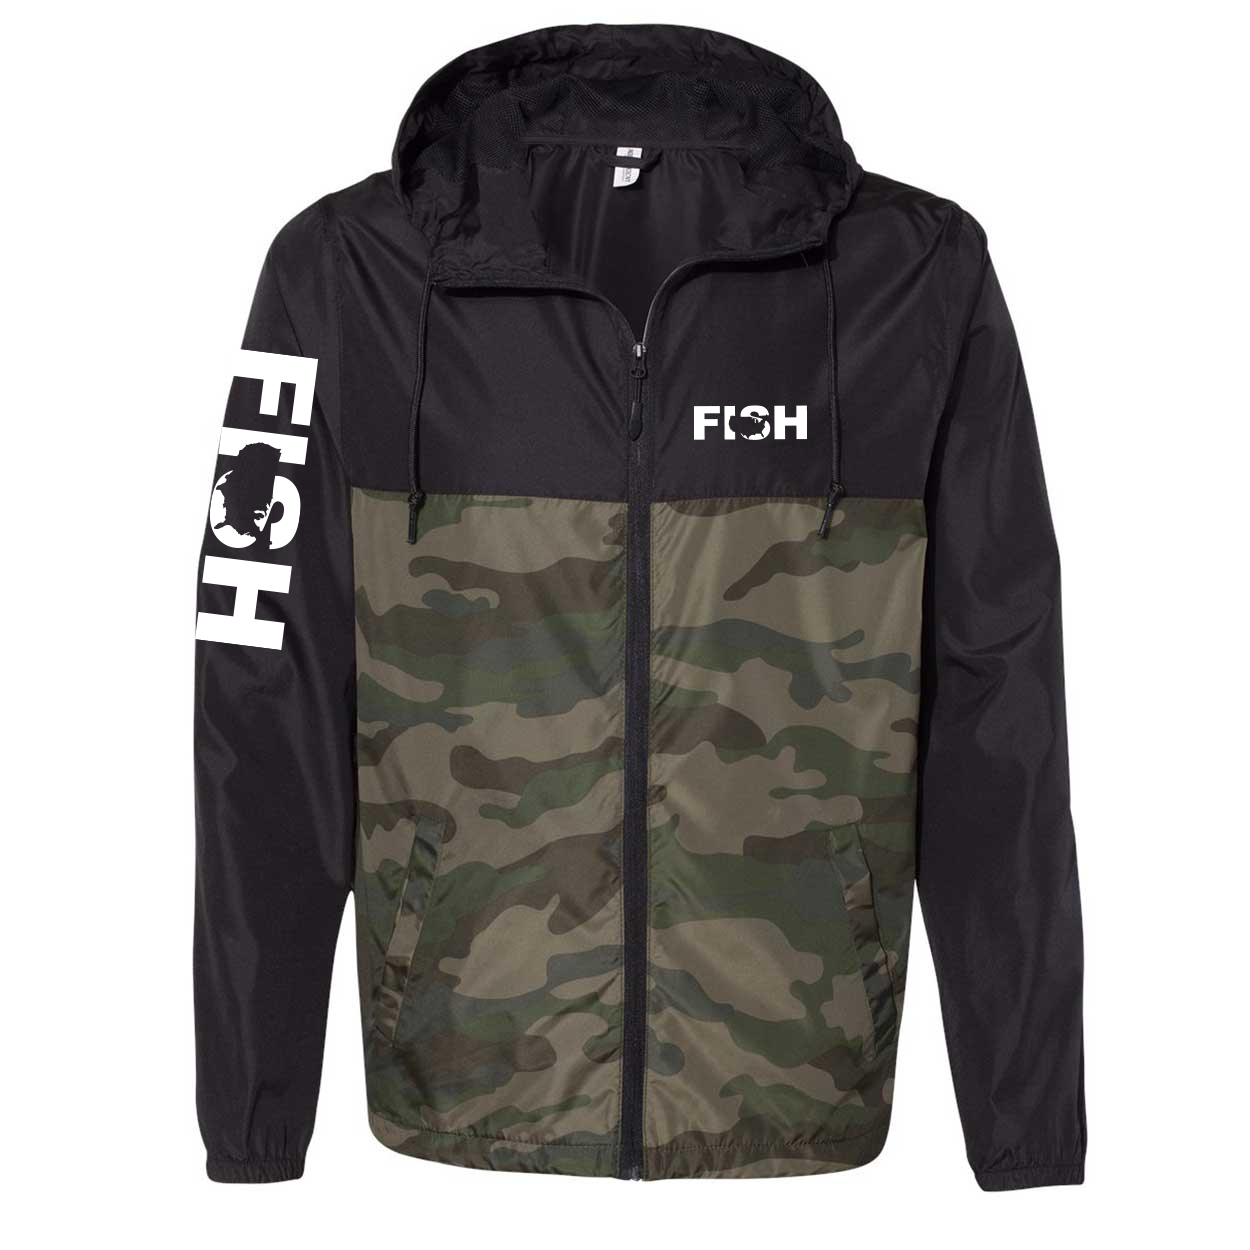 Fish United States Classic Lightweight Windbreaker Black/Forest Camo (White Logo)